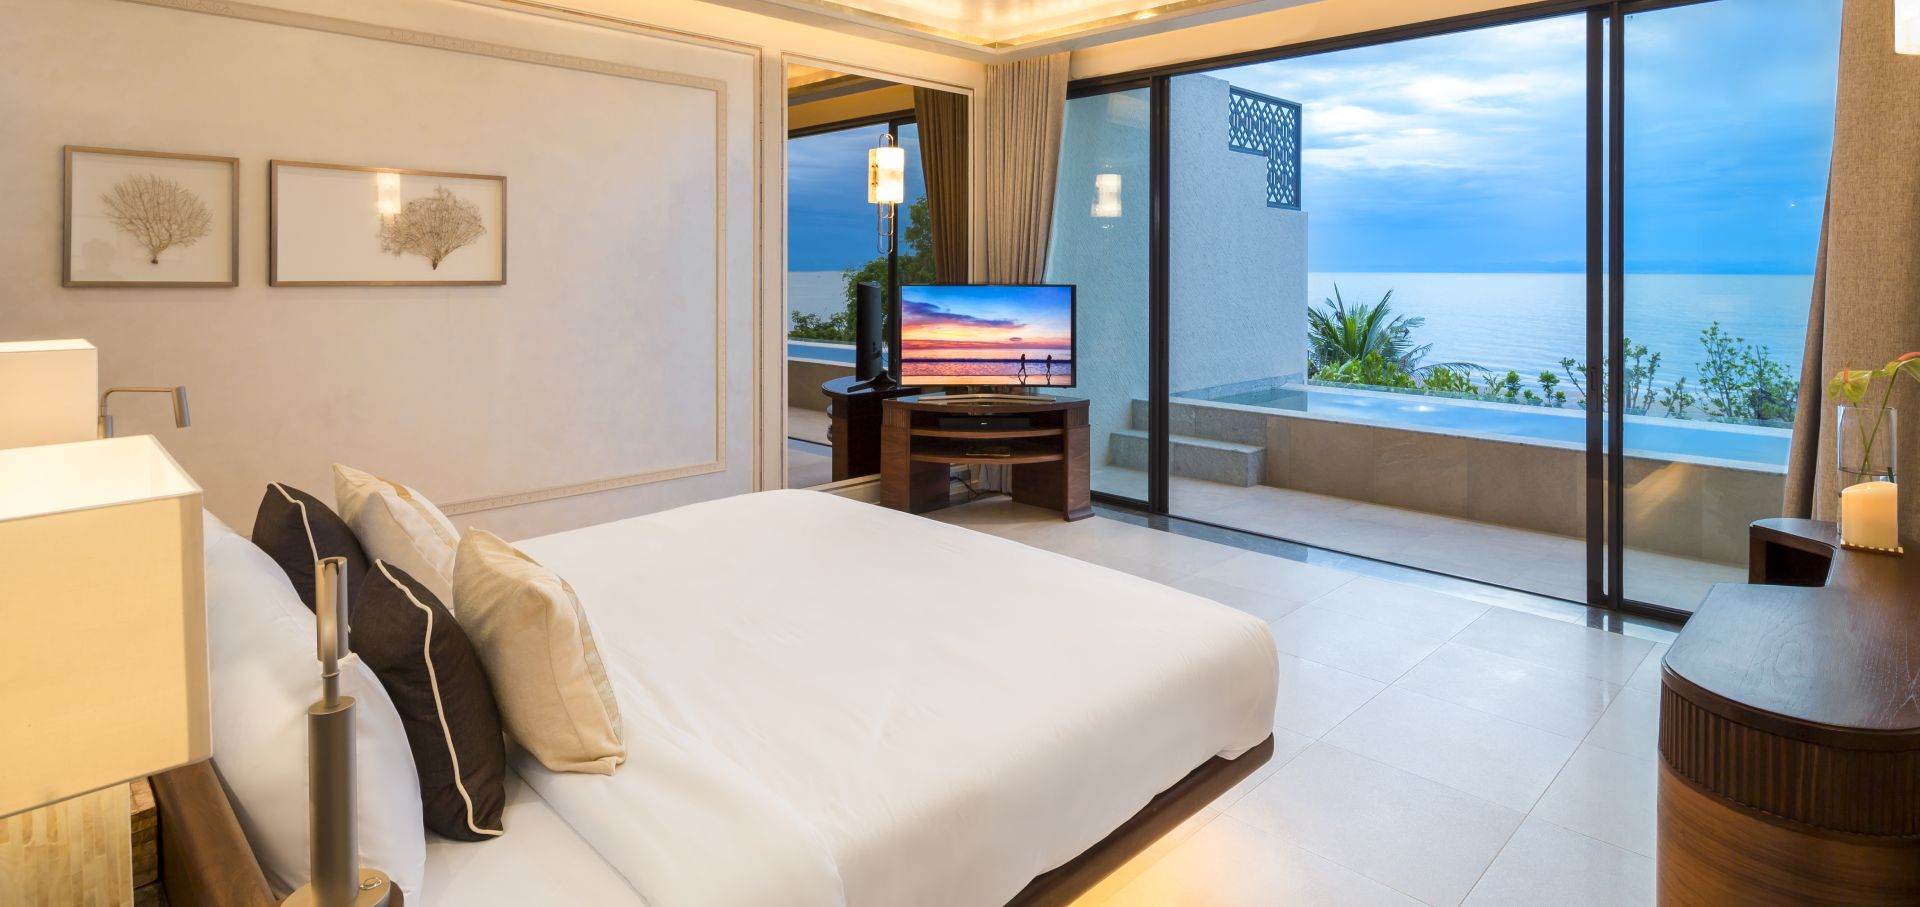 5-Beachfront-Penthouse-Baba-Beach-Club-HuaHin-Luxury-Hotel-Cha-Am-Beach-Resort